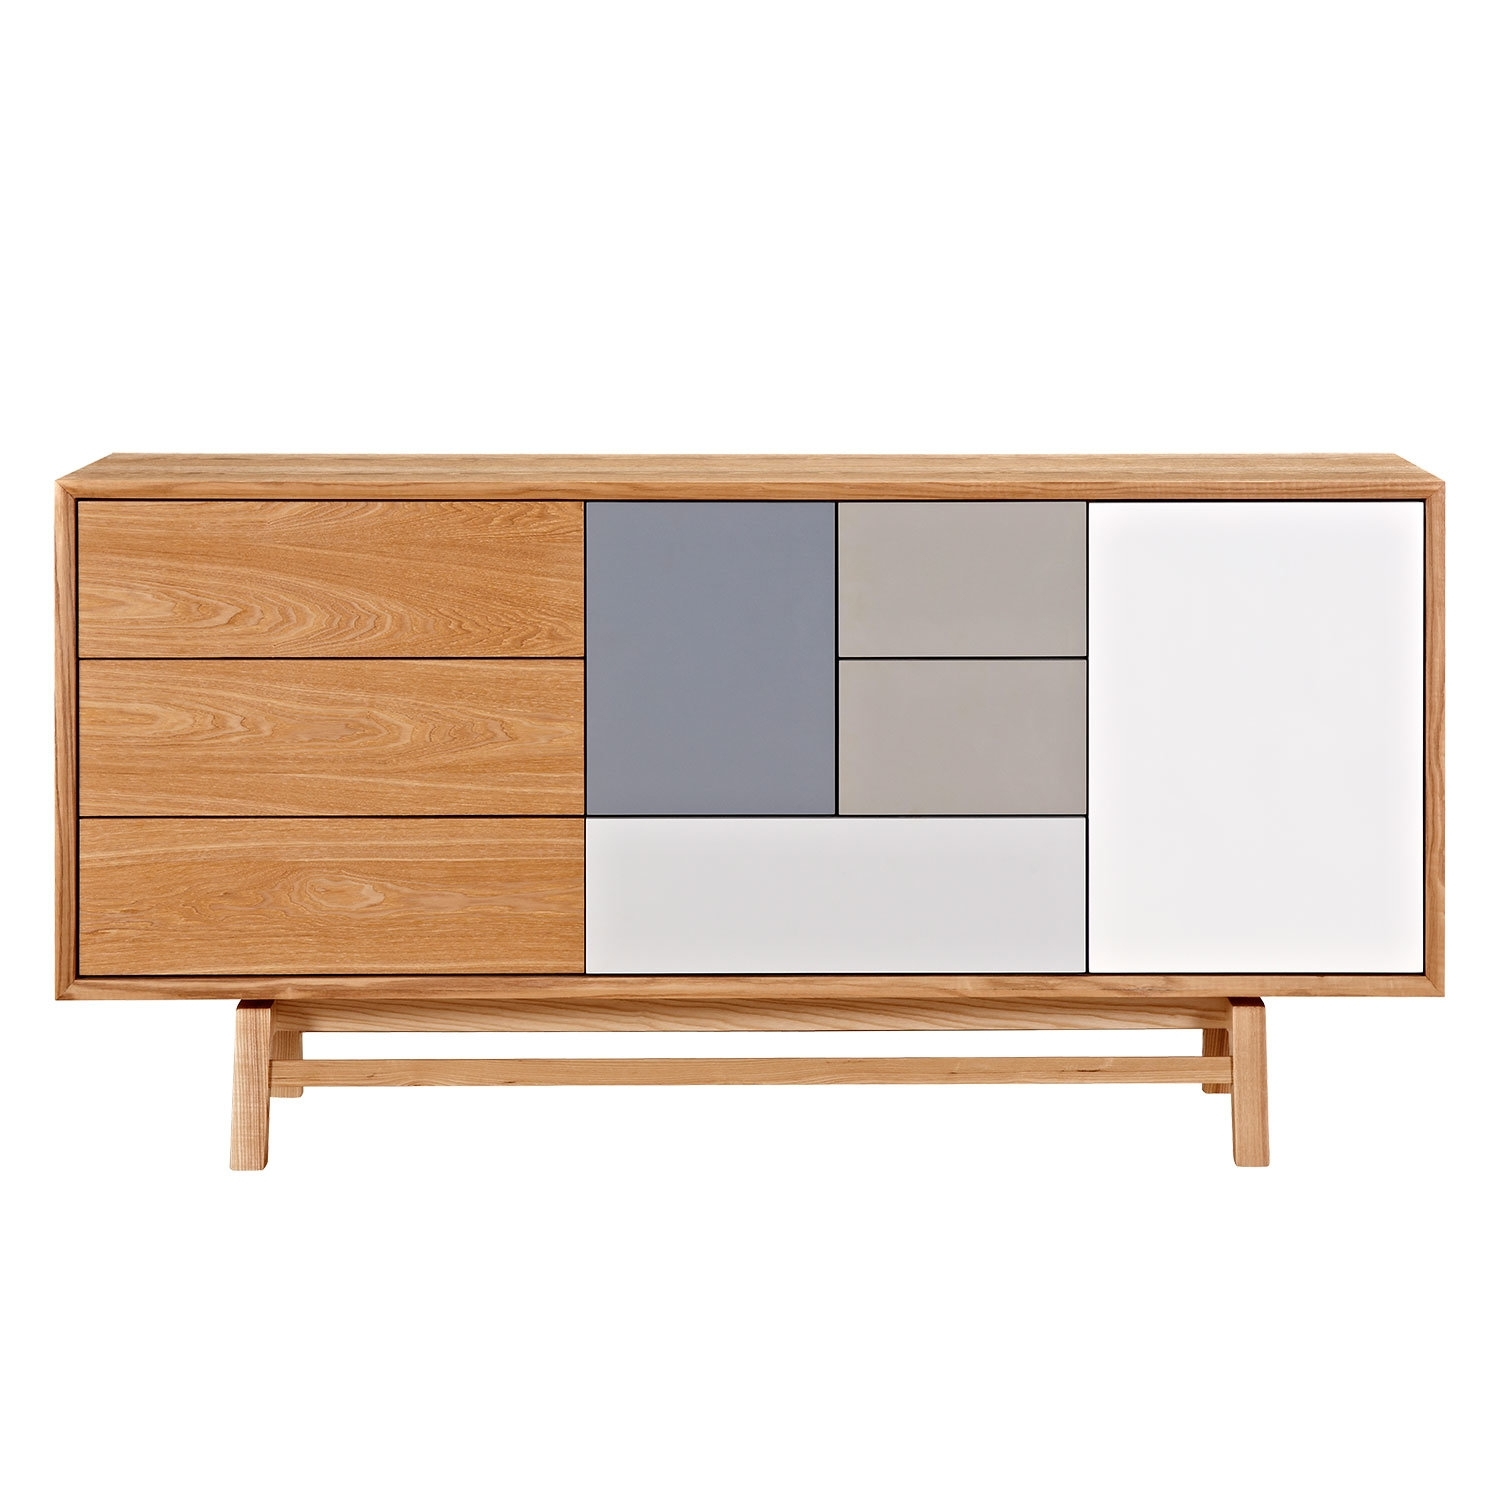 Nyekoncept Grane Sideboard | Wayfair within Solar Refinement Sideboards (Image 15 of 30)